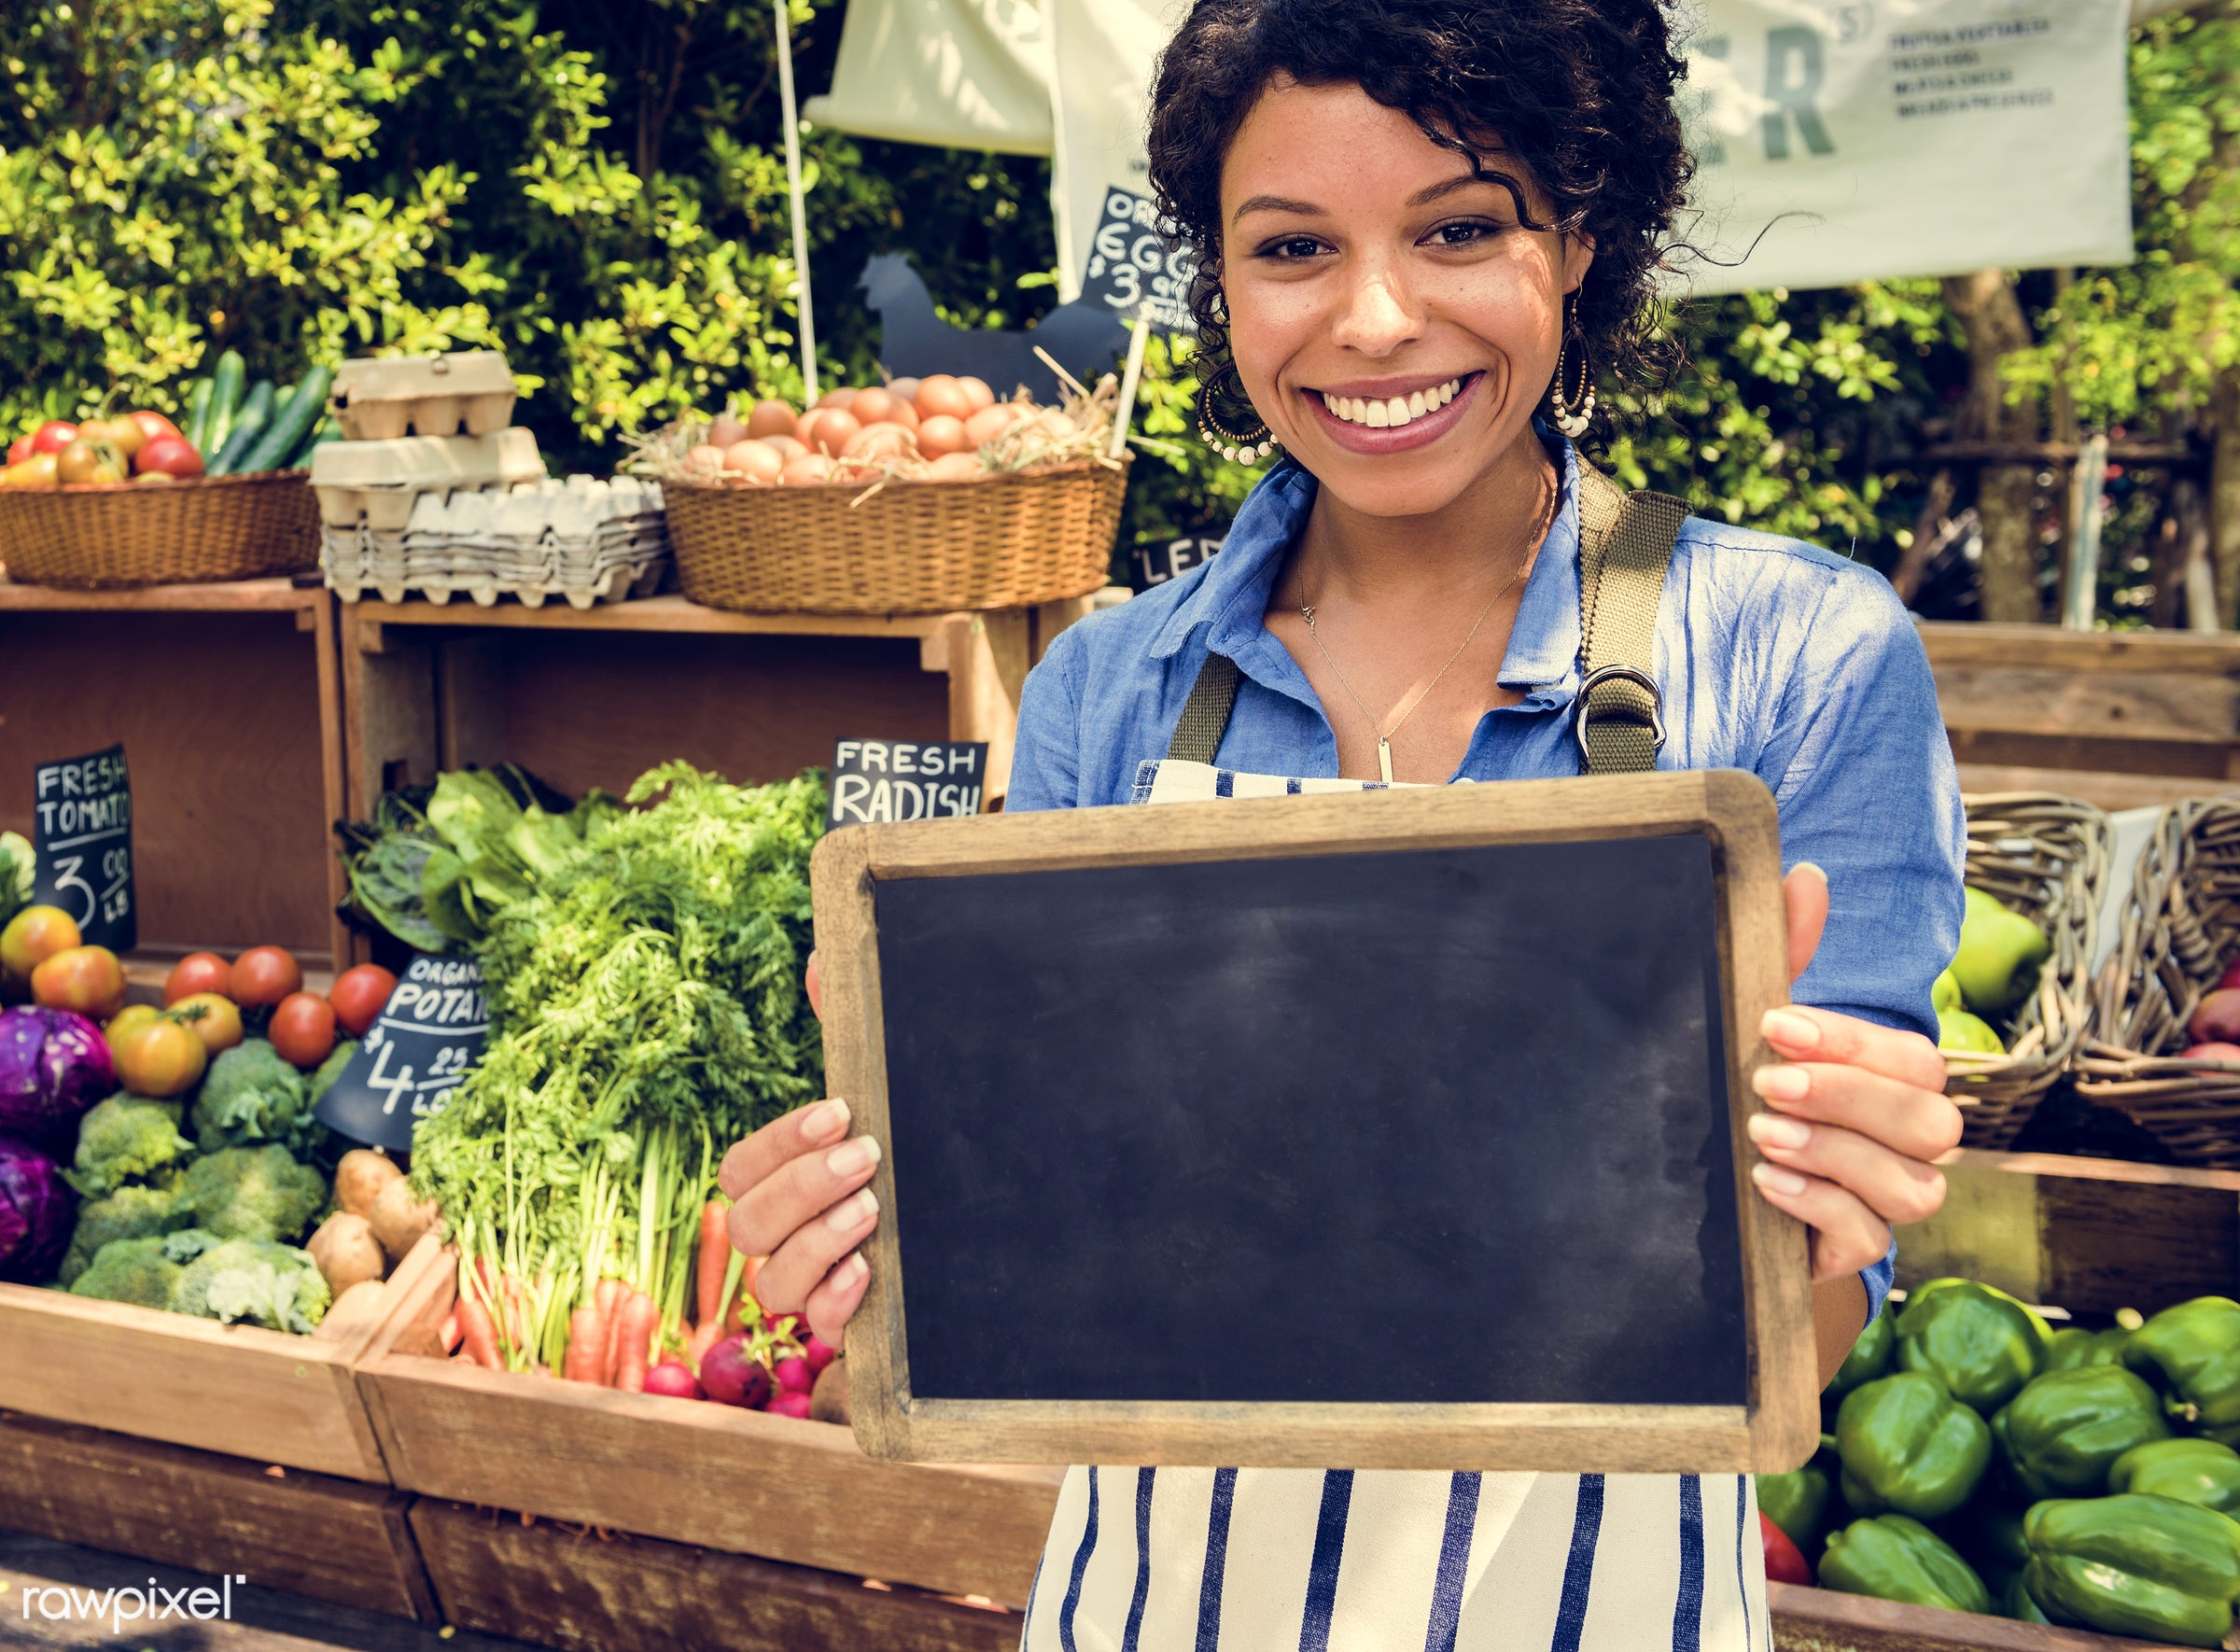 grocery, shop, tomato, store, holding, bell pepper, egg, farmer, woman, cheerful, smiling, fruit, african descent,...